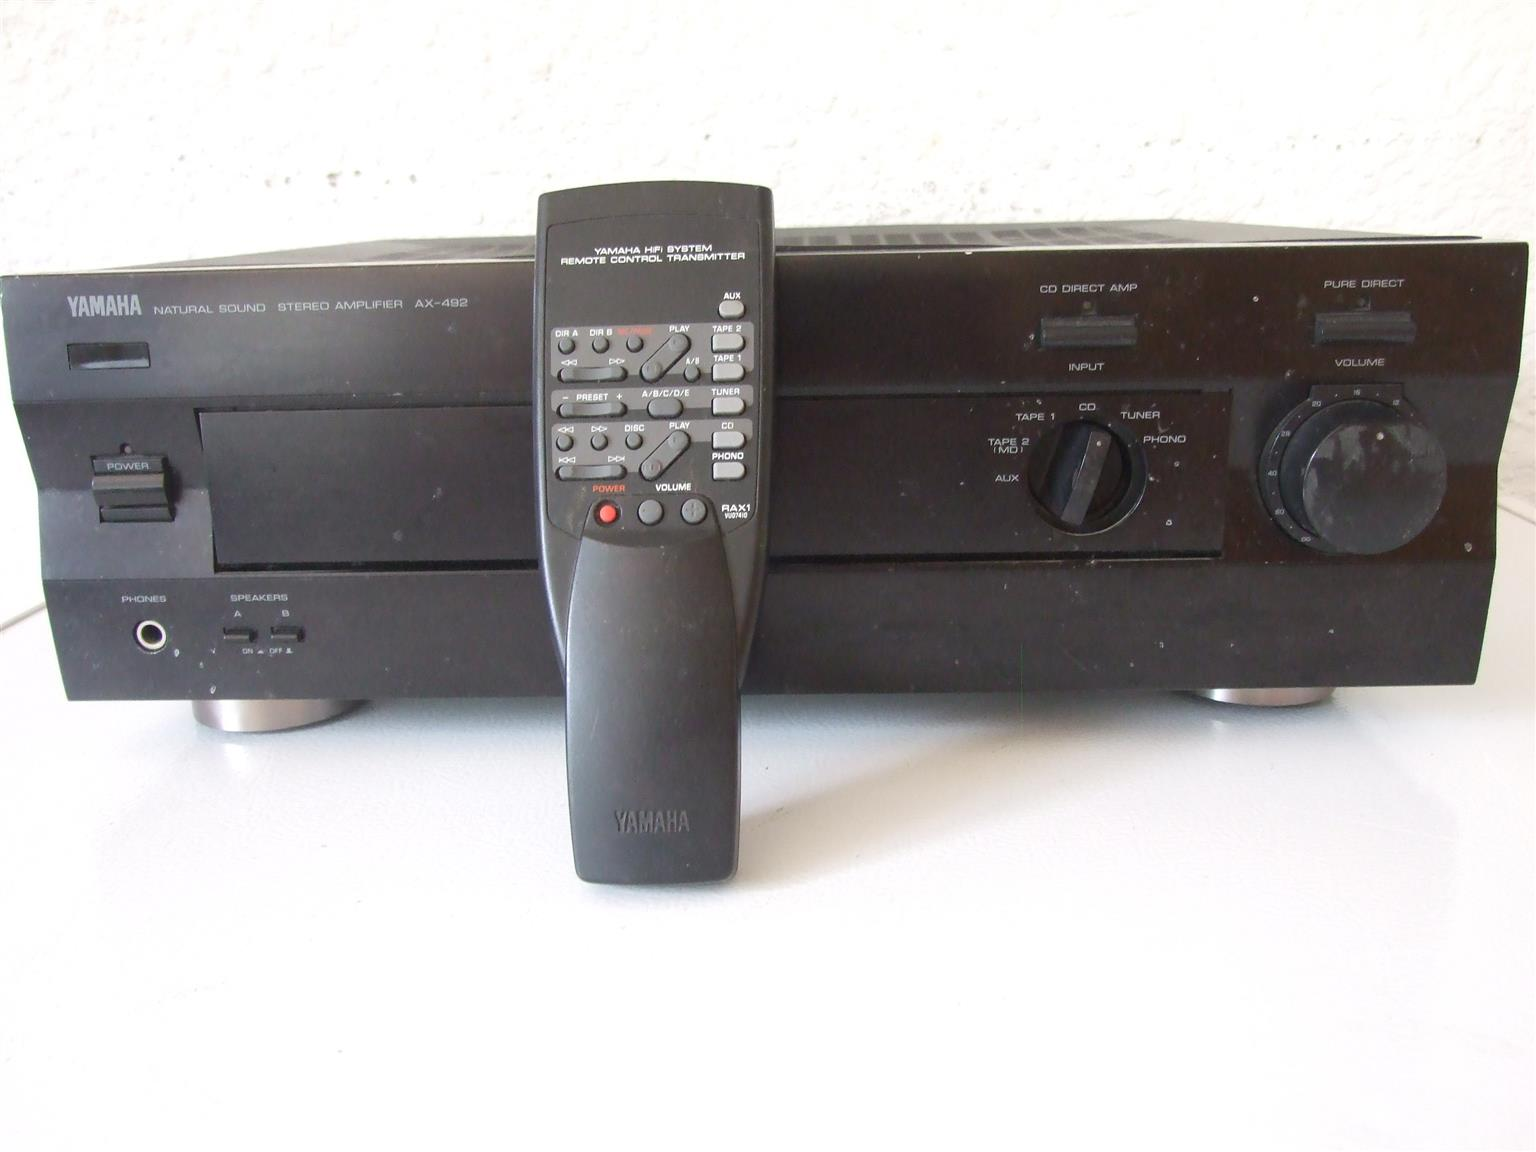 YAMAHA Stereo Amplifier AX-492 with Remote control.